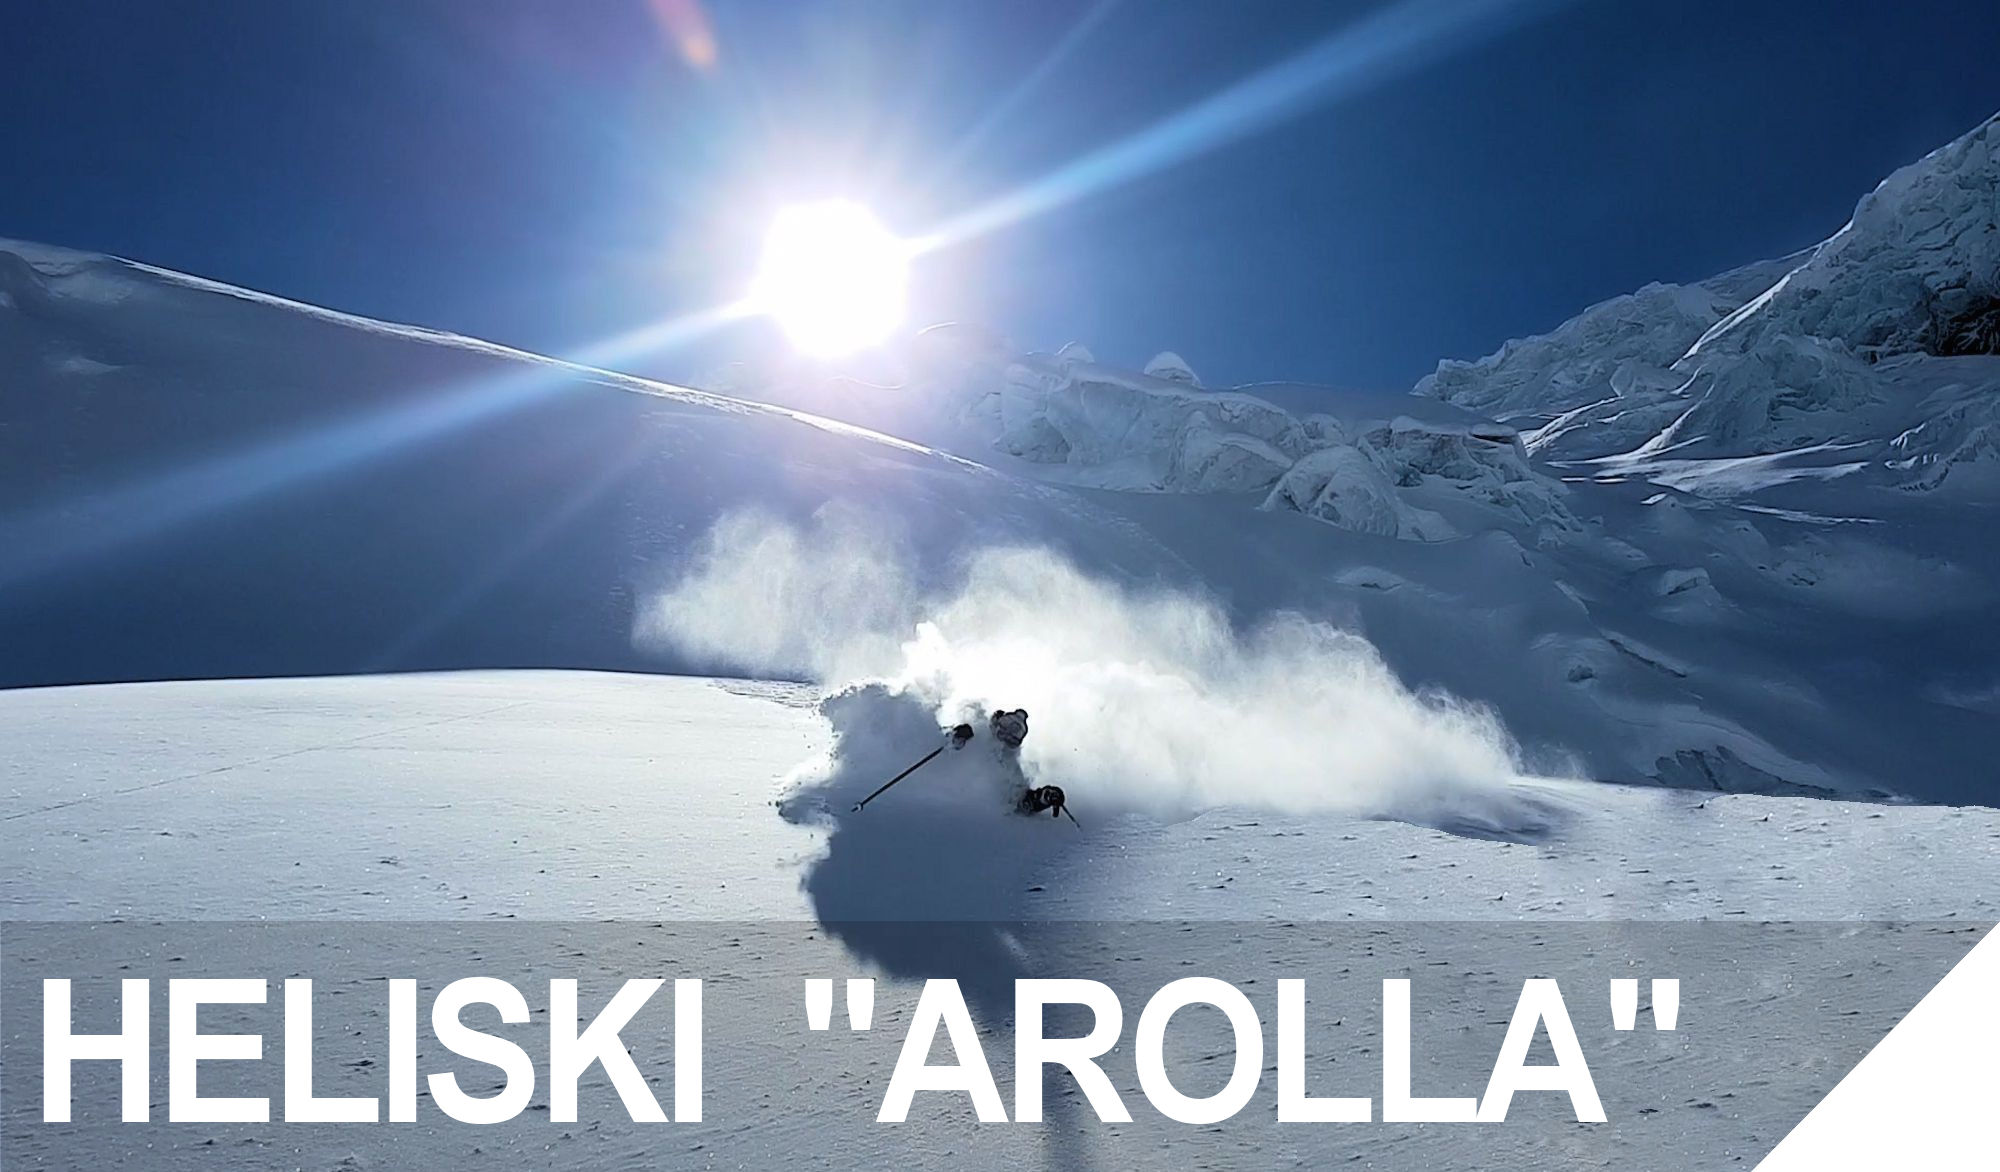 HELISKI PACKAGE AROLLA